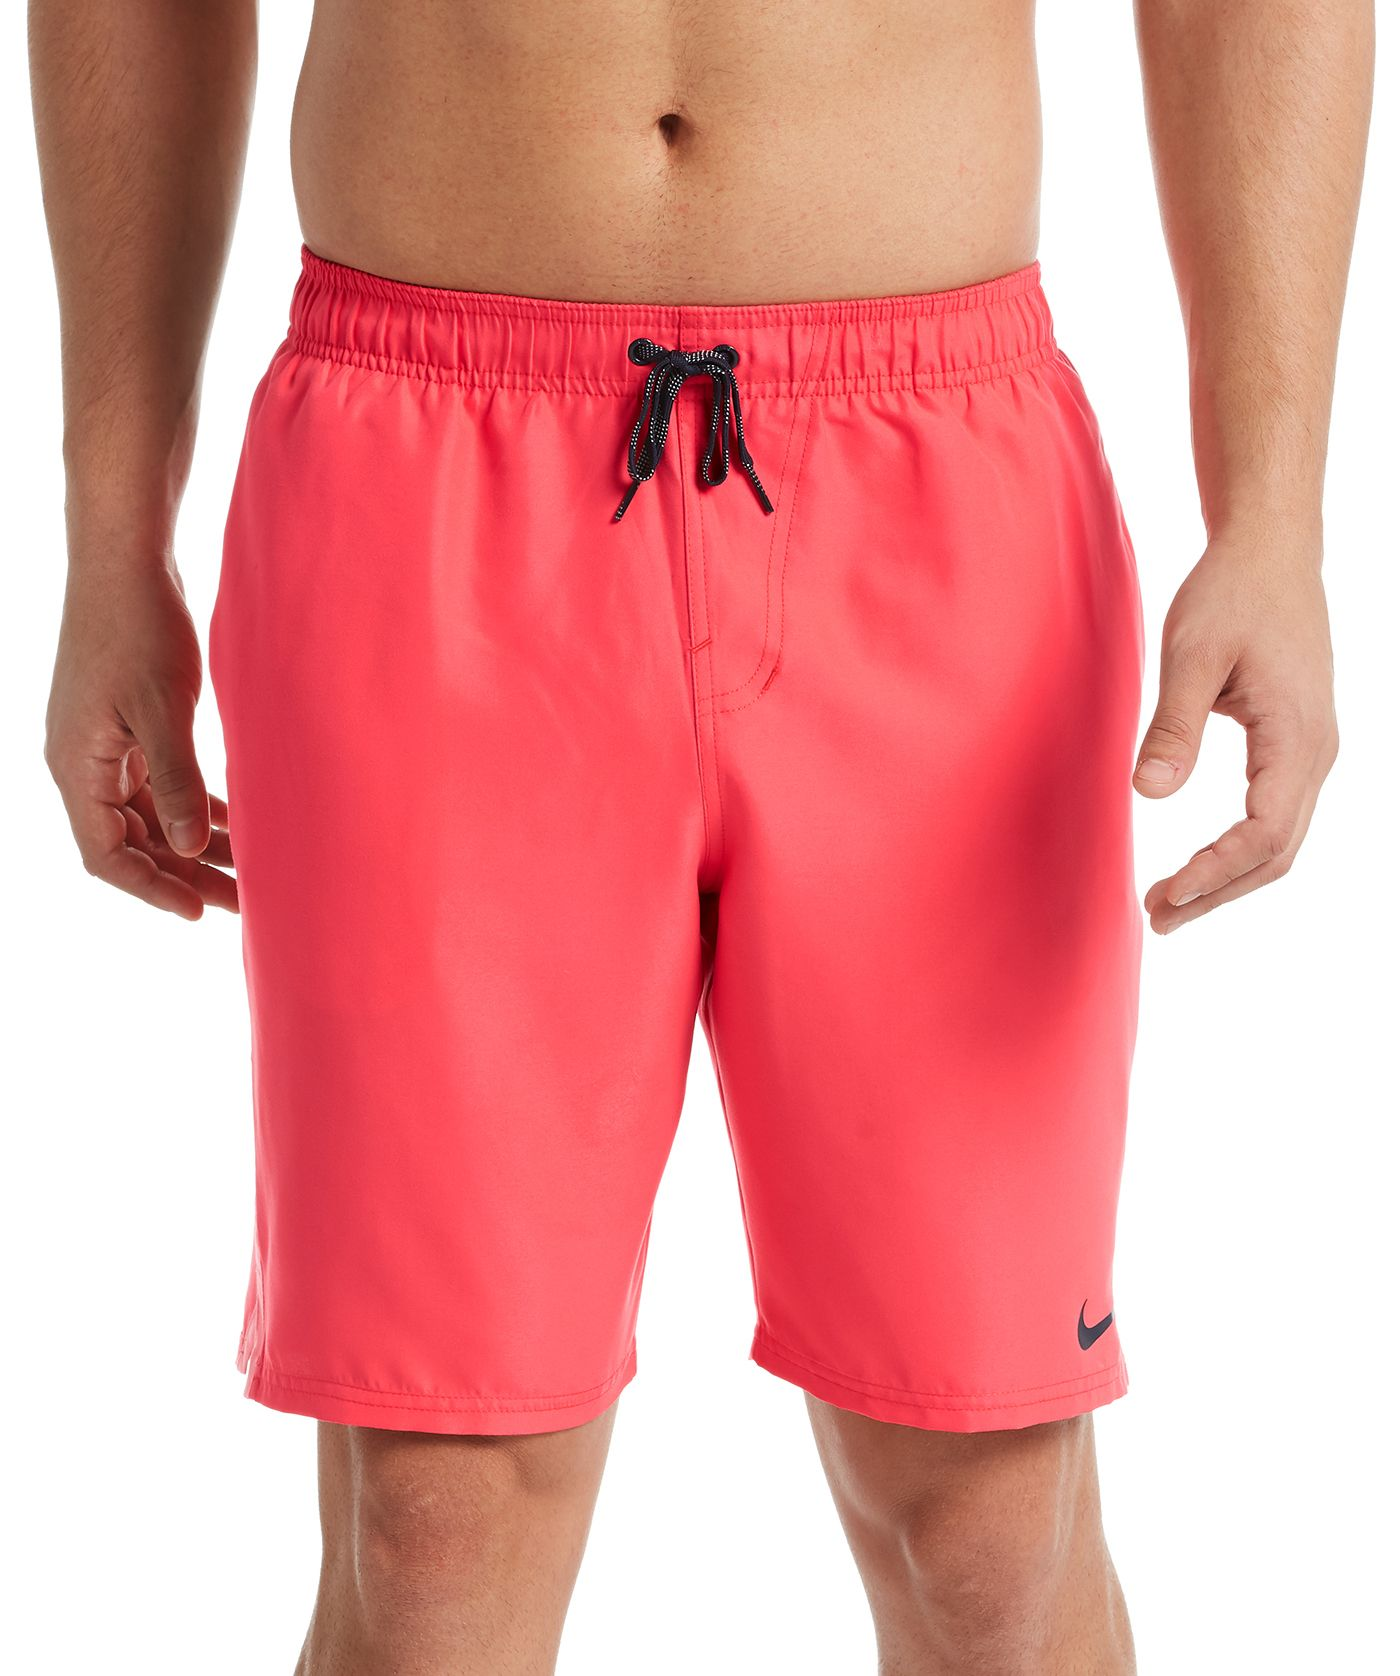 "Nike Men's Perforated Diverge 9"" Swim Trunks"